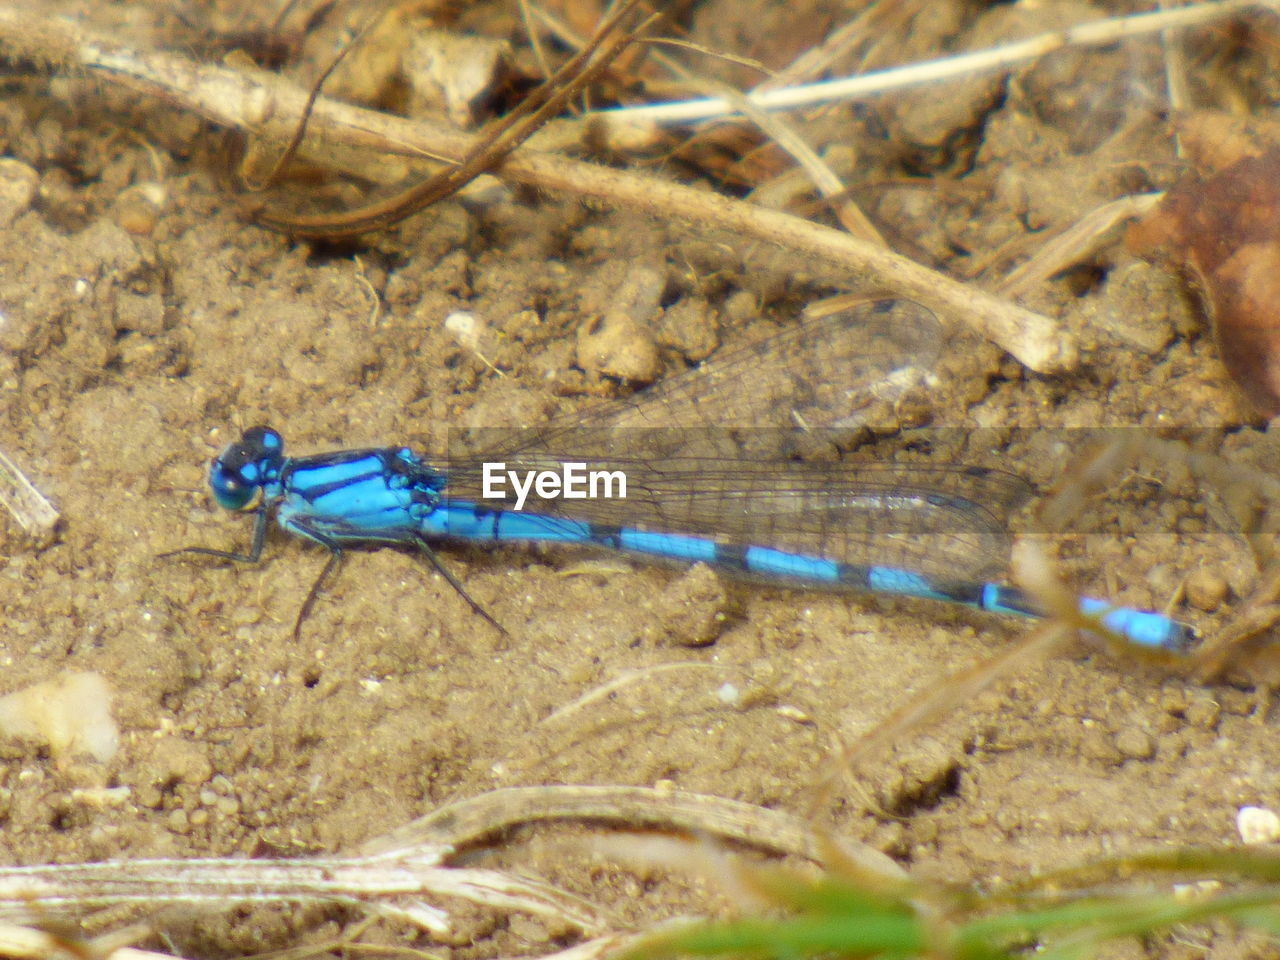 animal themes, insect, one animal, animals in the wild, blue, damselfly, no people, day, animal wildlife, nature, close-up, outdoors